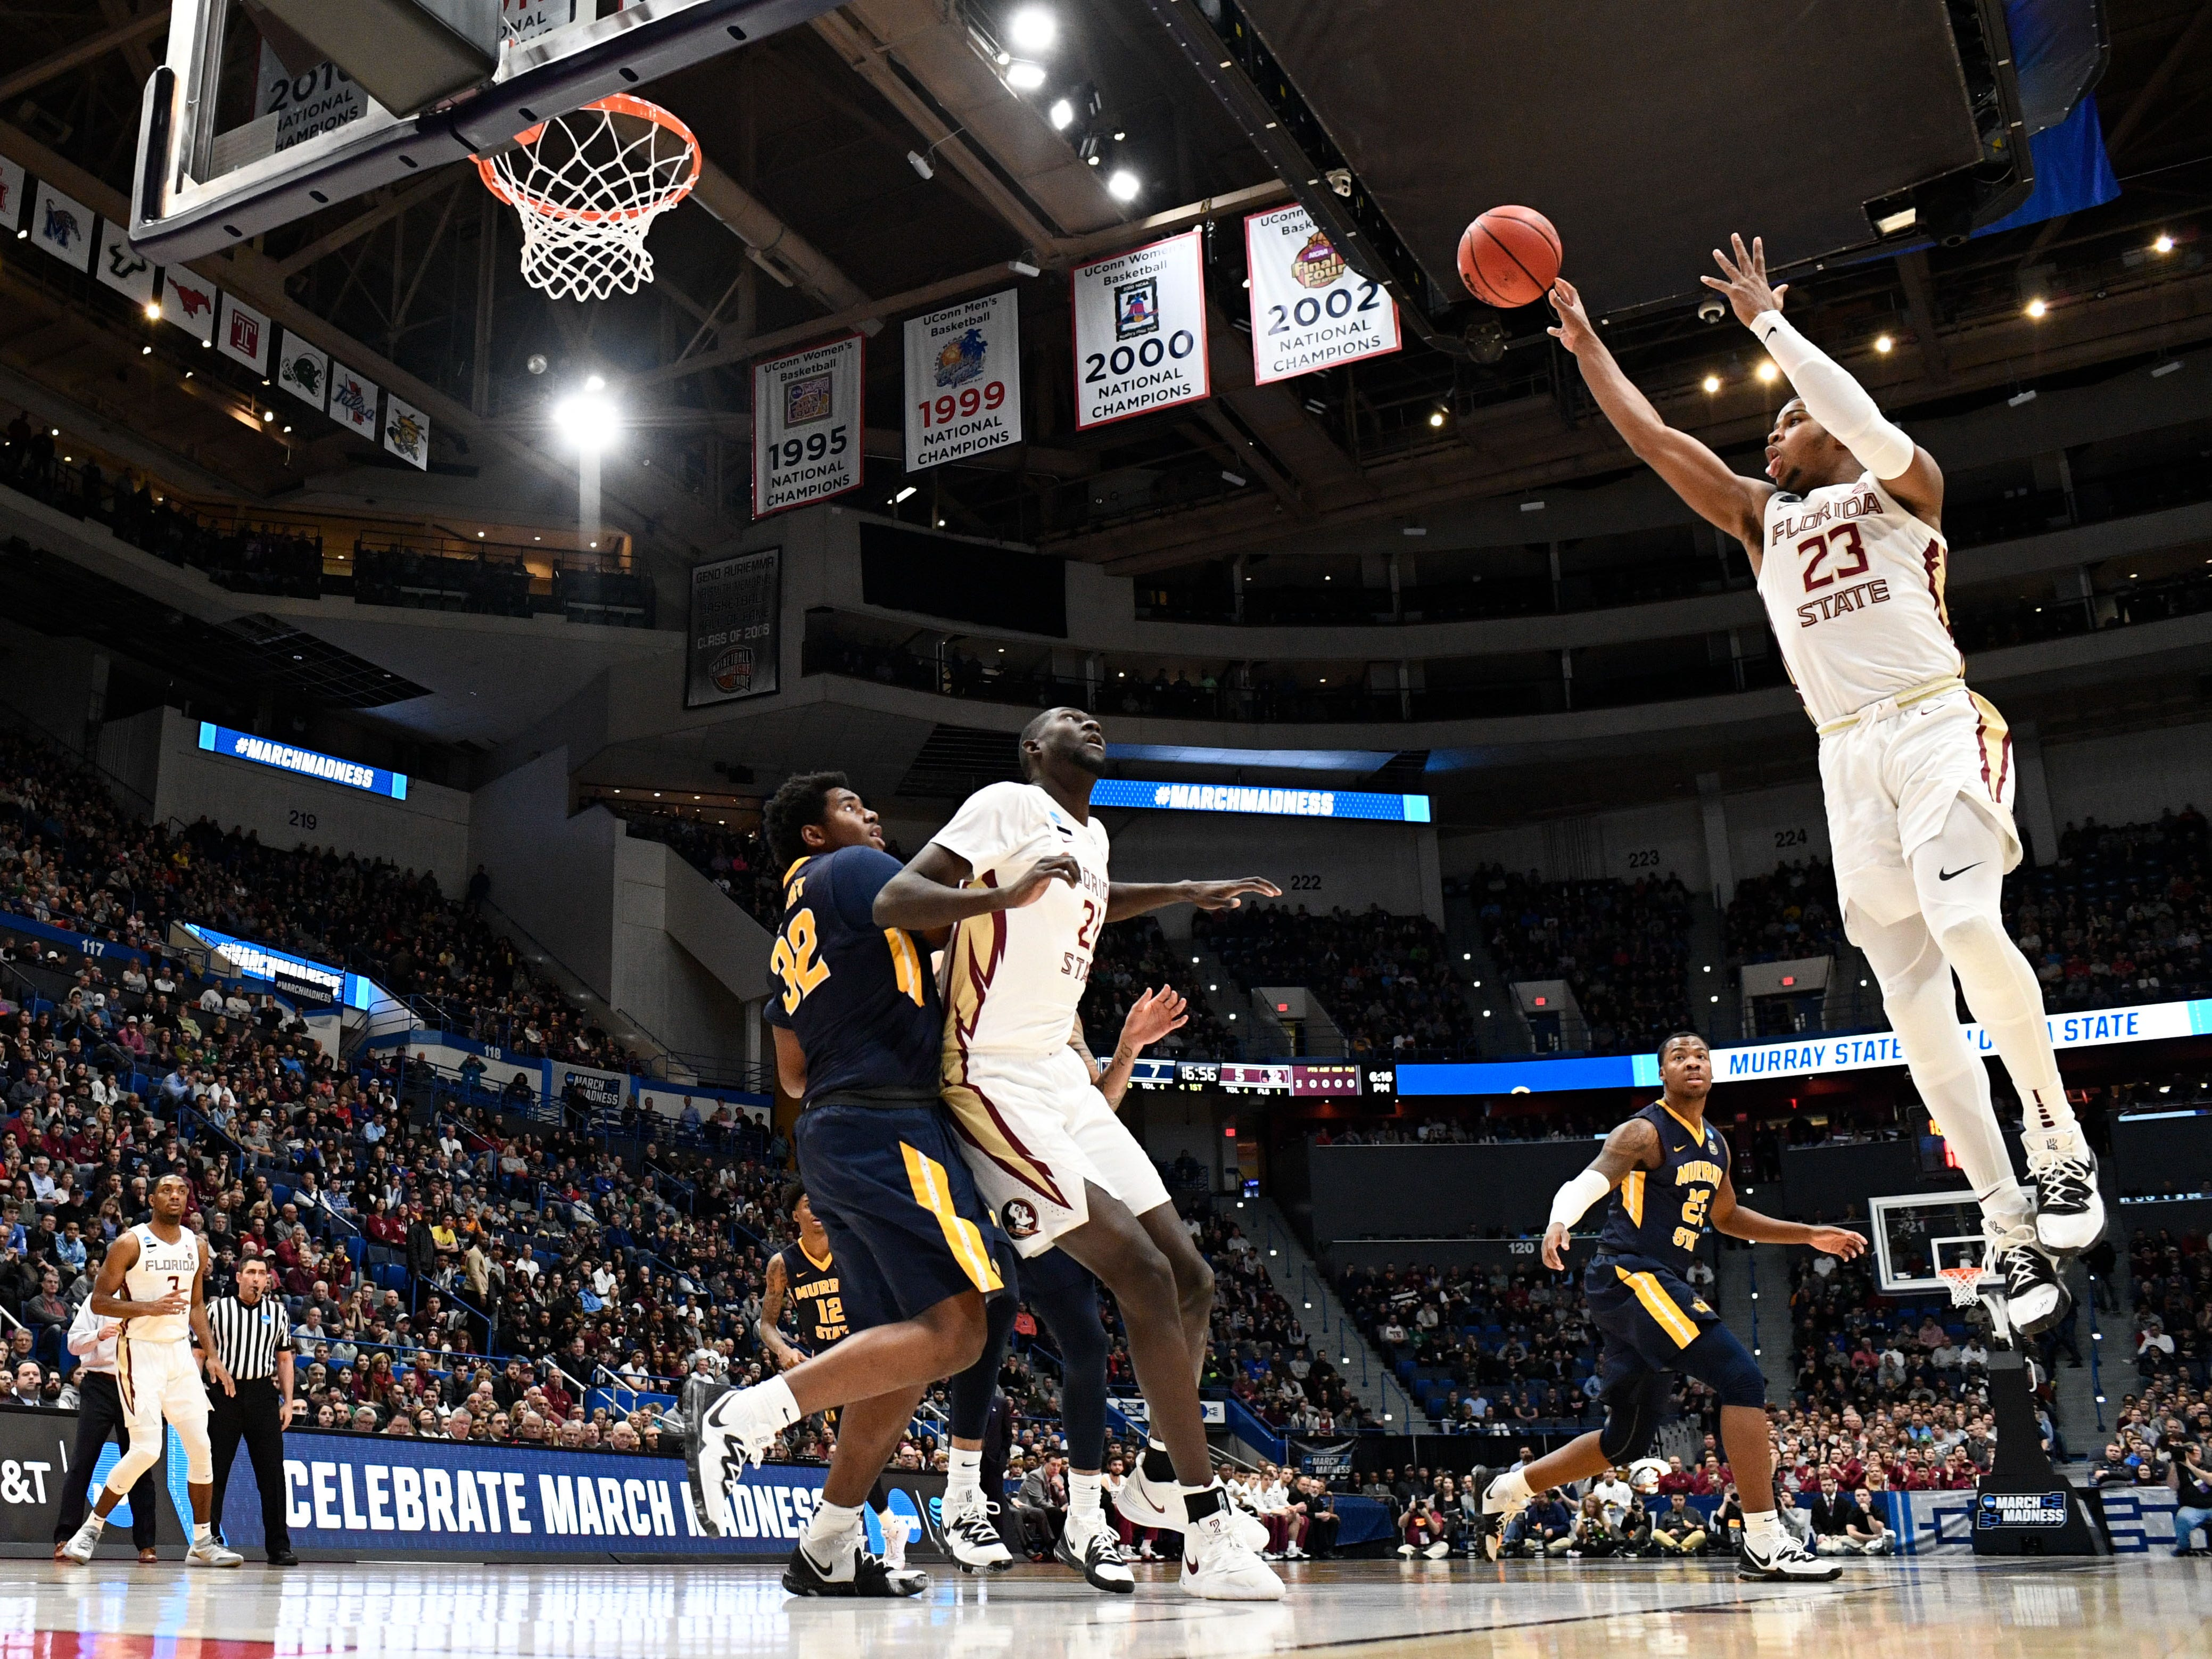 Mar 23, 2019; Hartford, CT, USA; Florida State Seminoles guard M.J. Walker (23) attempts a shot against the Murray State Racers during the first half of a game in the second round of the 2019 NCAA Tournament at XL Center. Mandatory Credit: Robert Deutsch-USA TODAY Sports